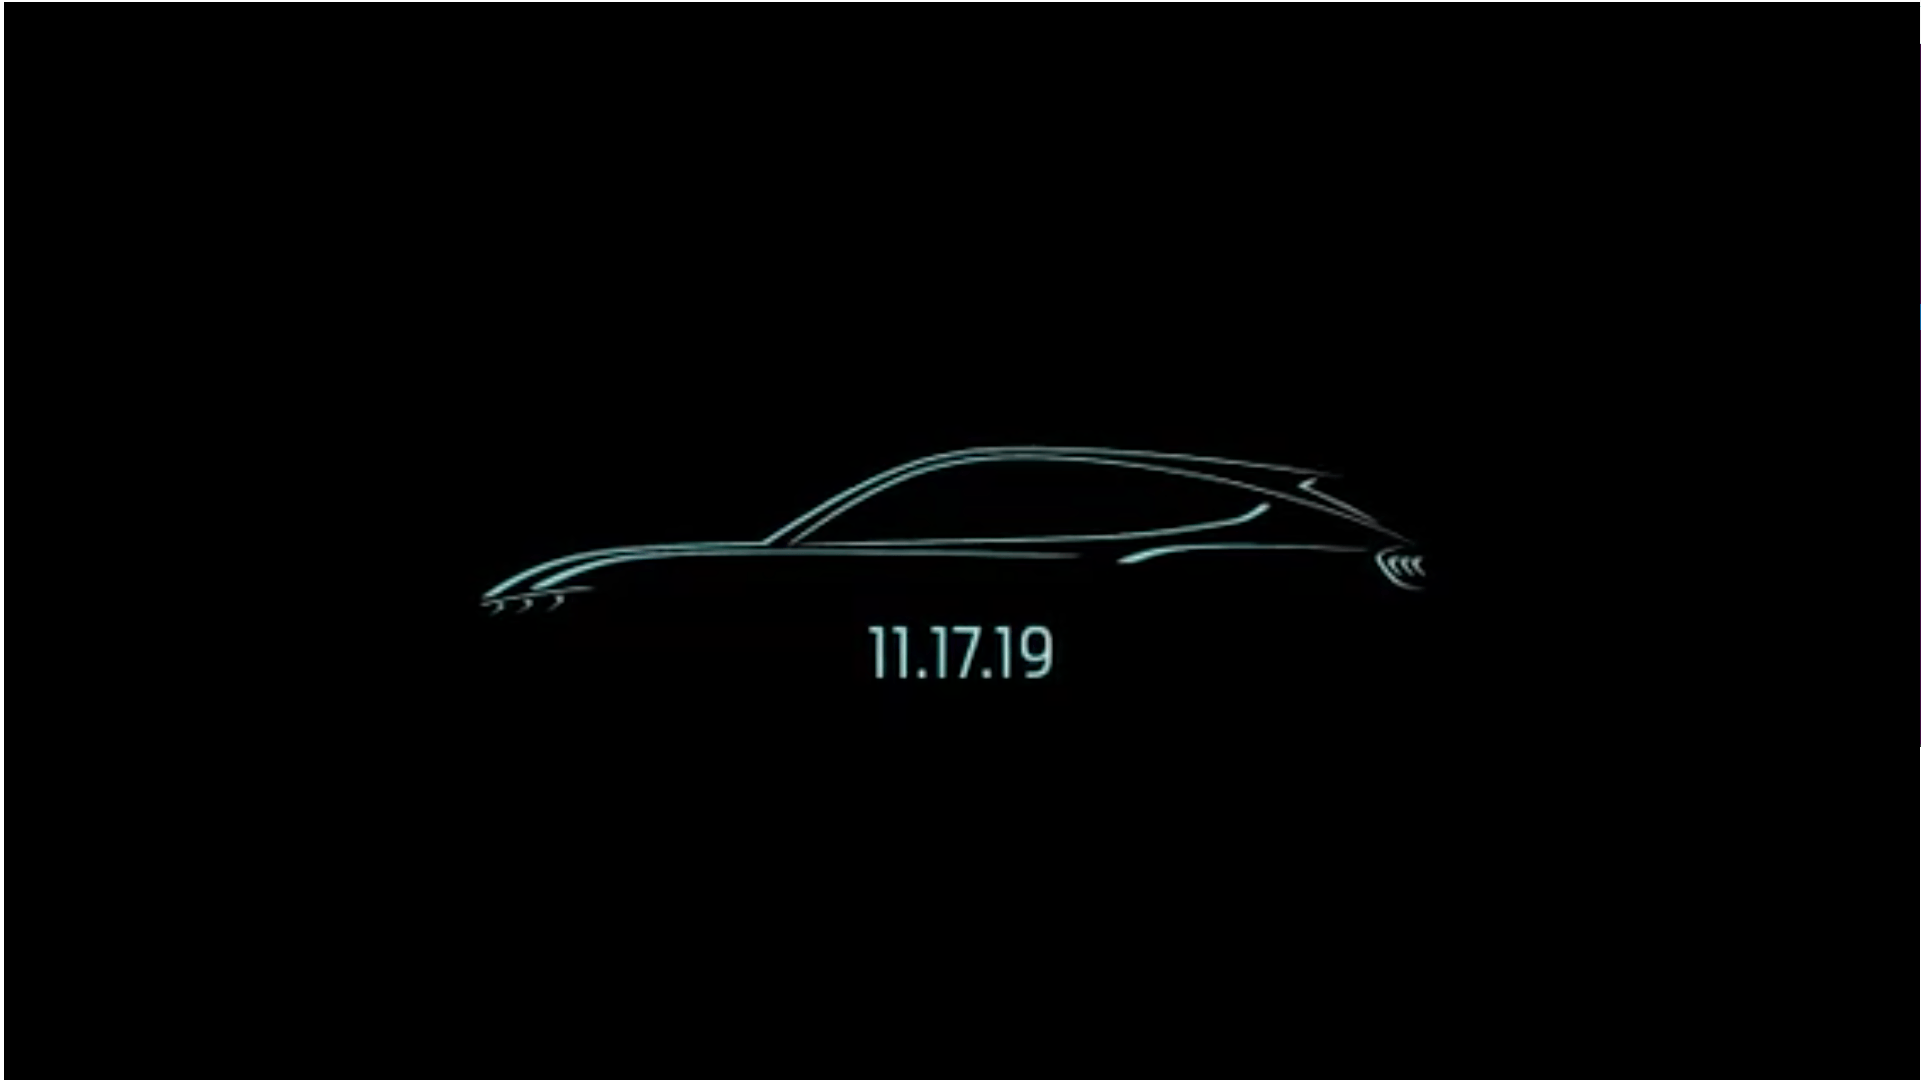 Ford Teases Electric Mustang-Inspired Crossover